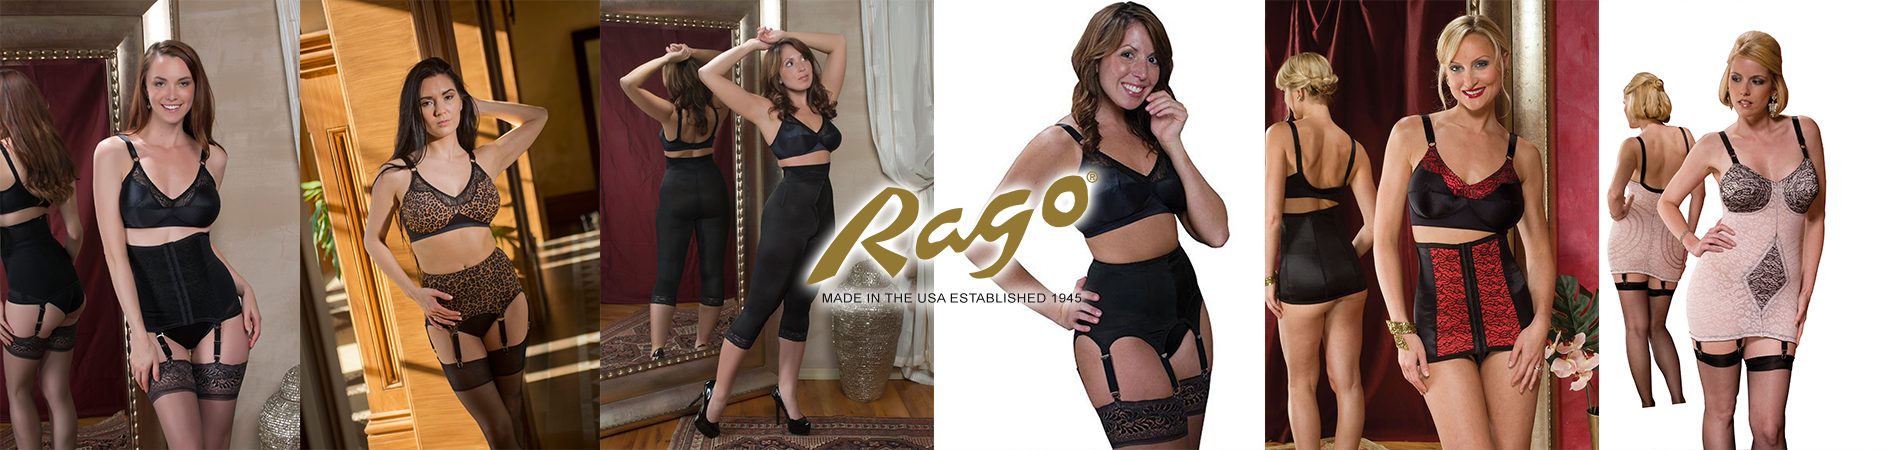 Brand Highlights: Rago Shapewear